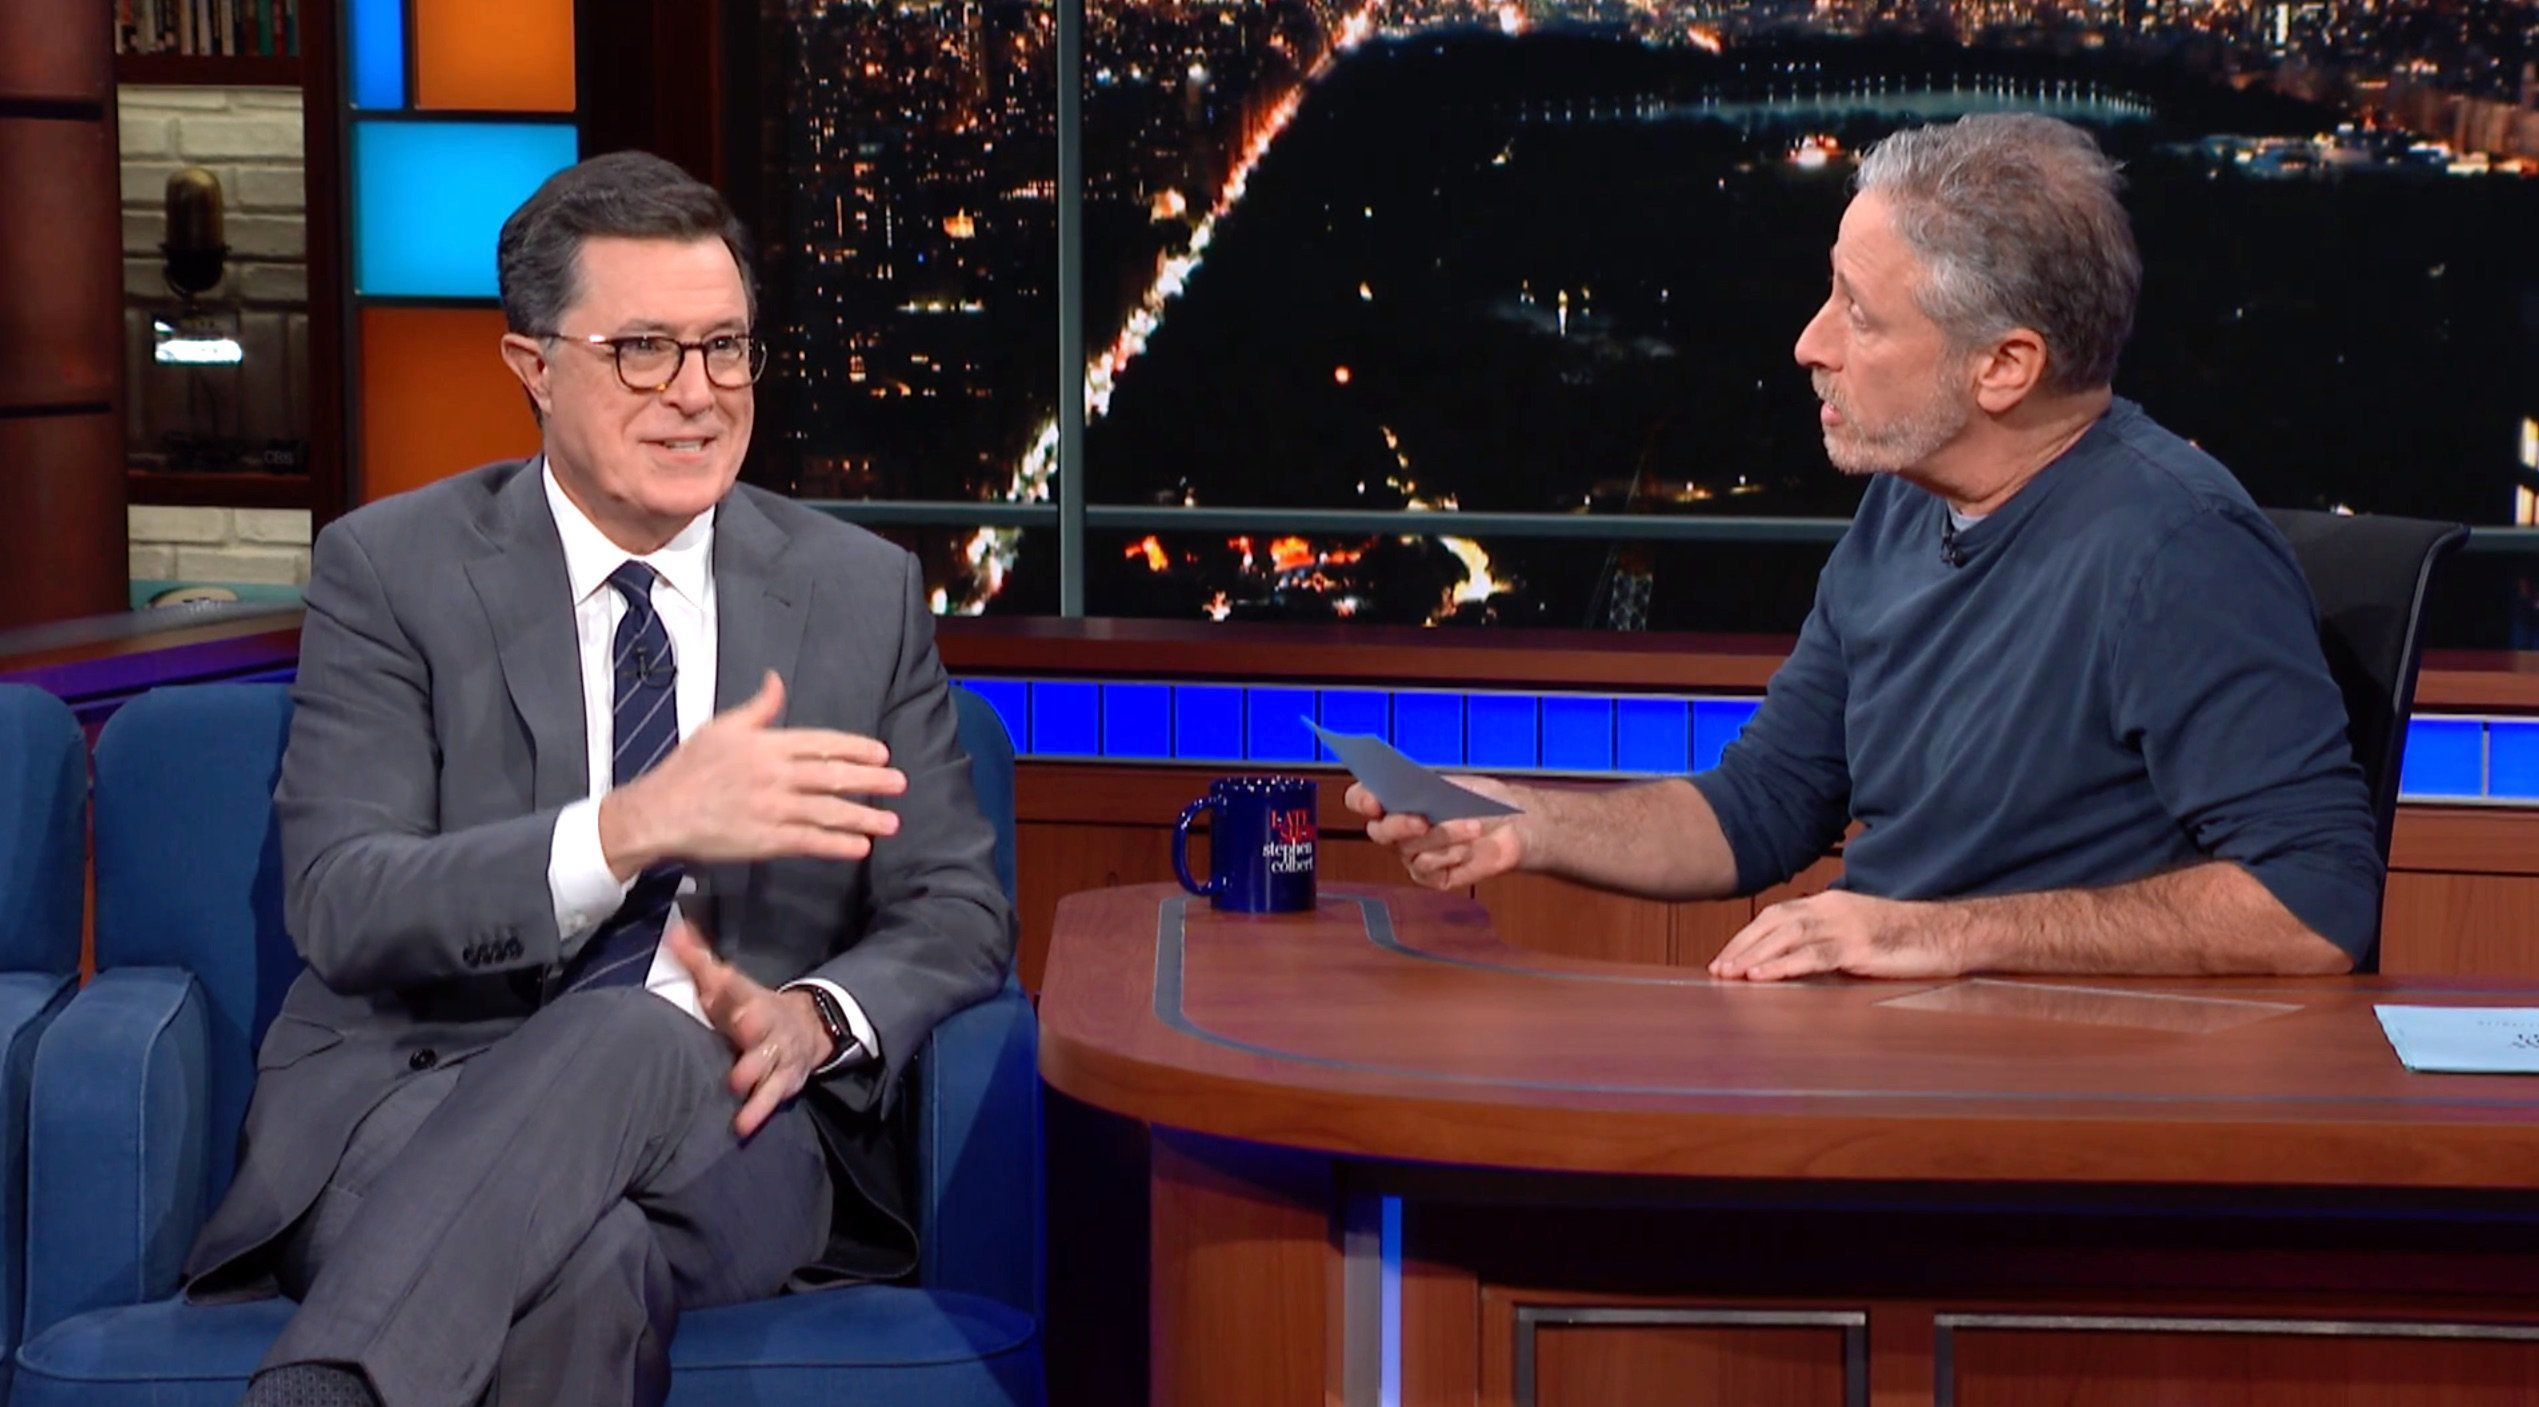 Jon Stewart Has An Incredibly Colorful Description Of How Colbert Handles